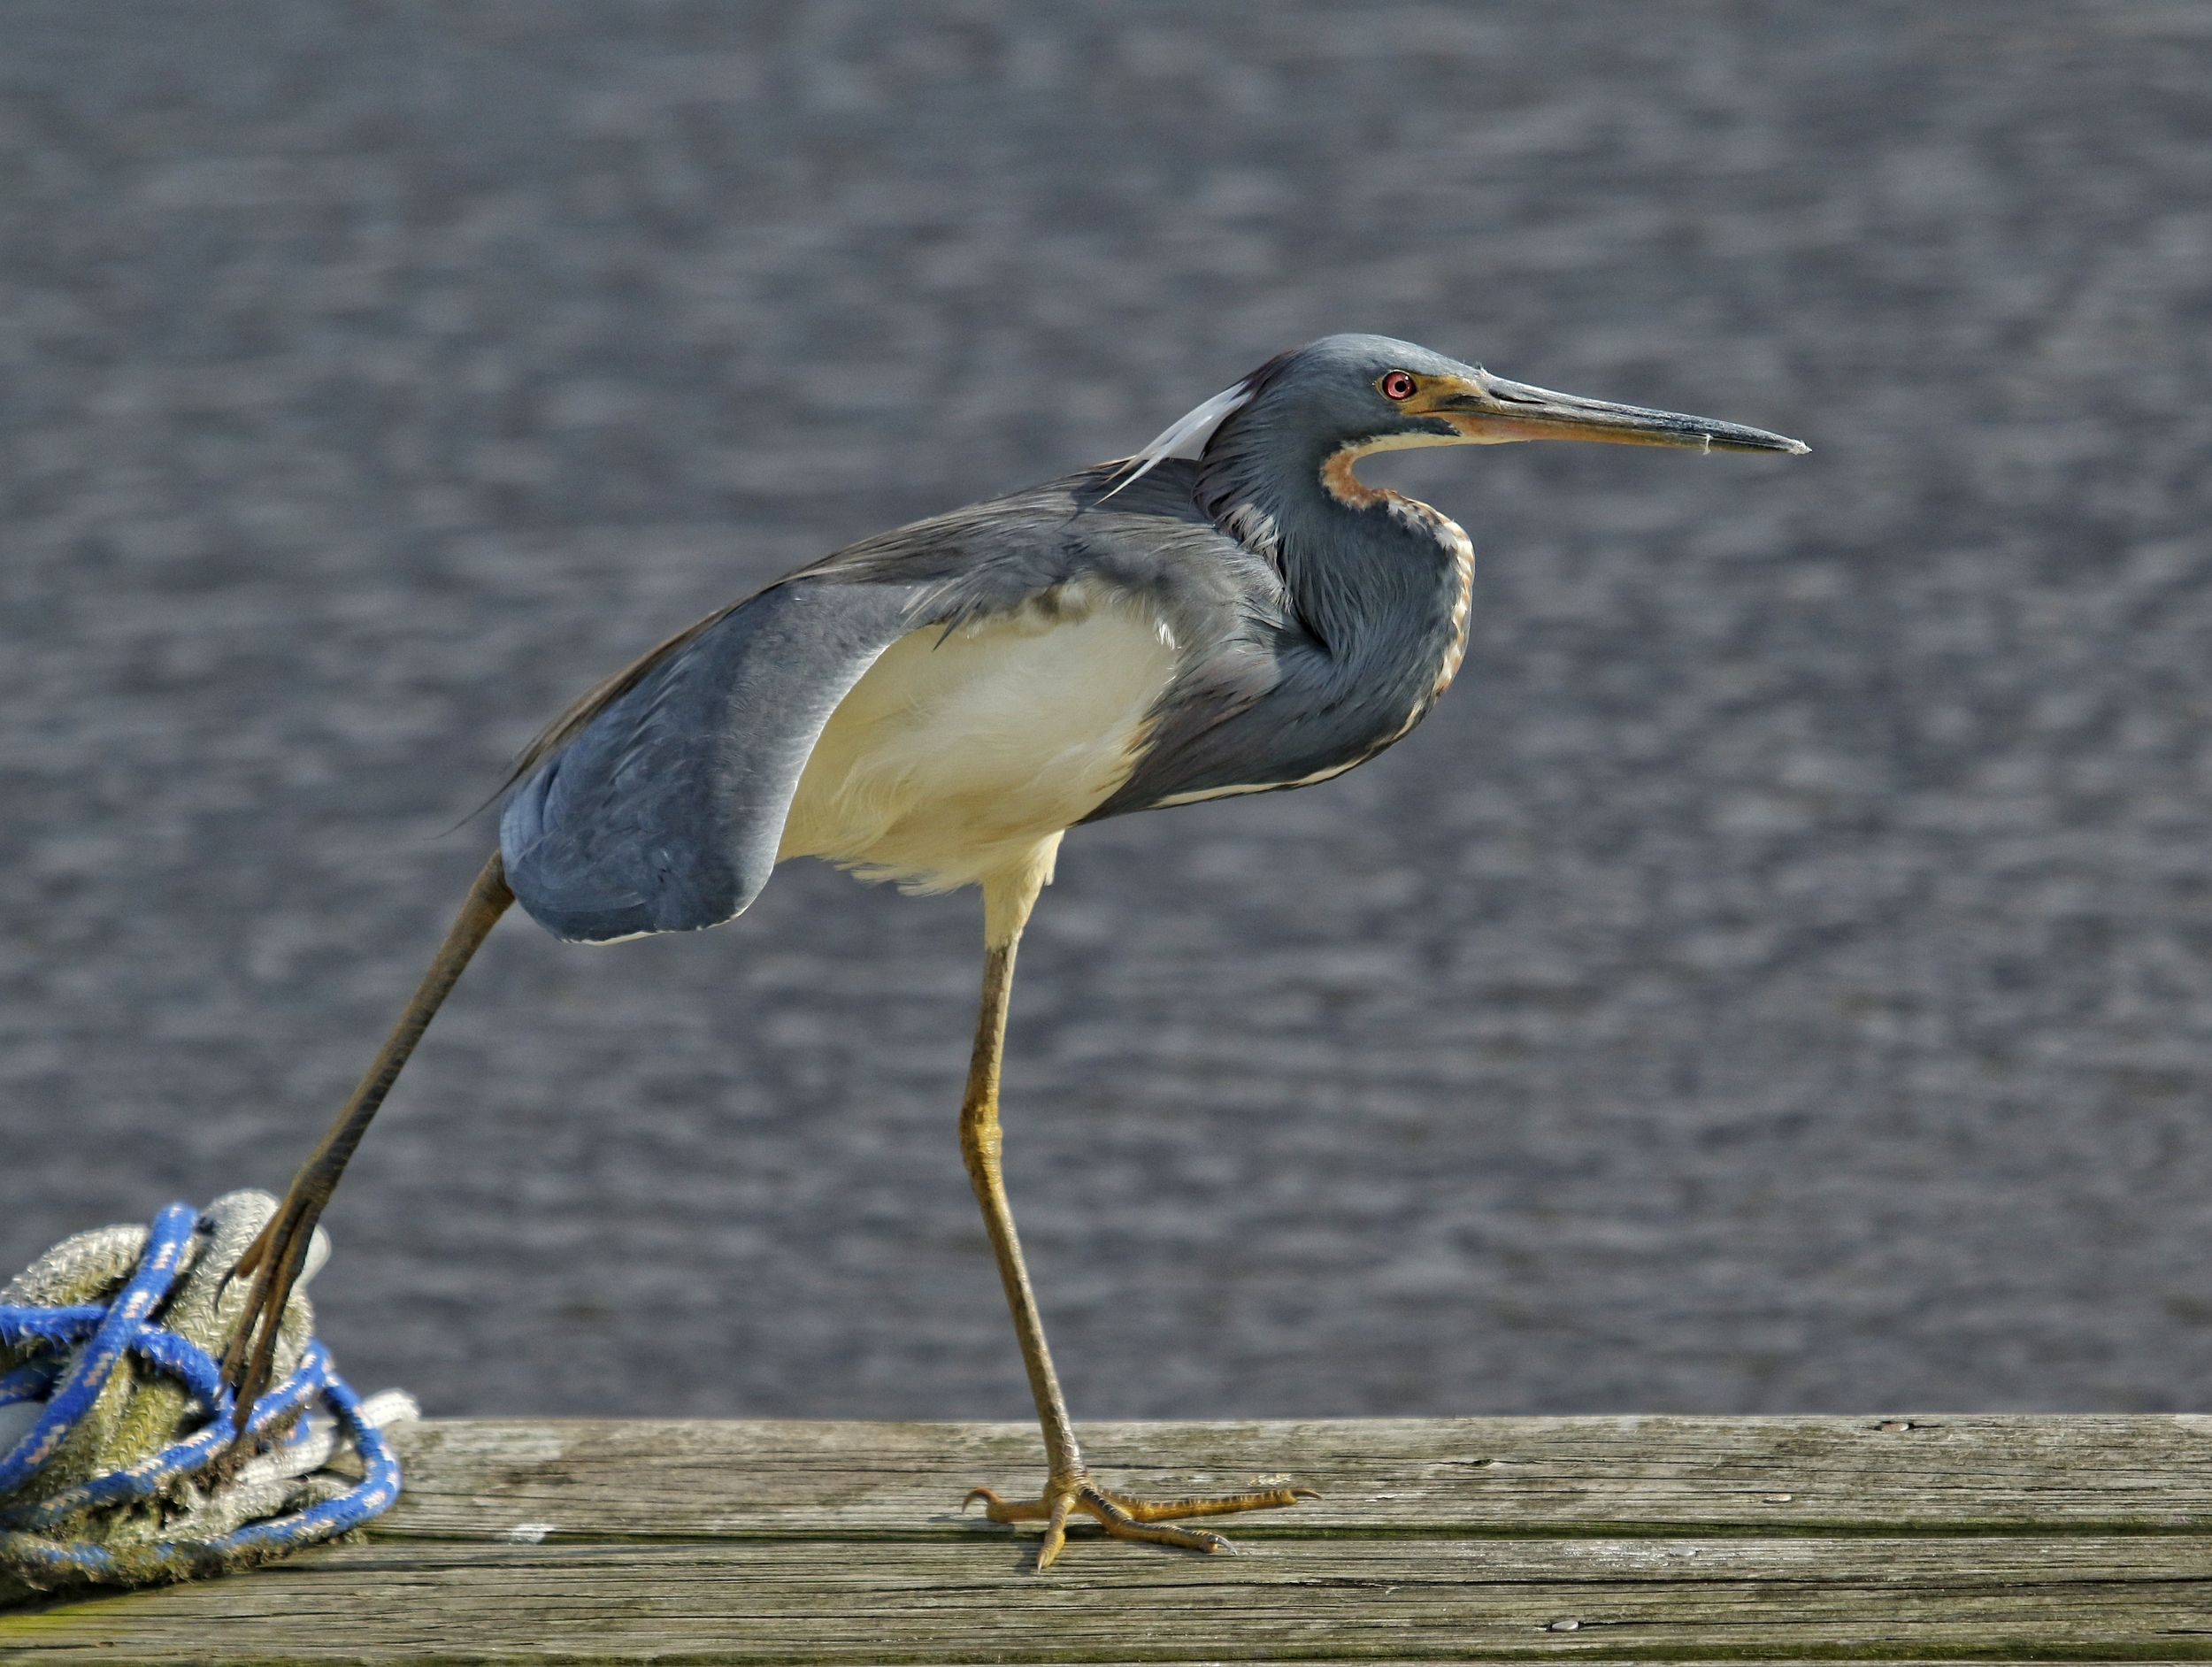 The Tricolored Heron stretches its leg…still waiting for its mate..